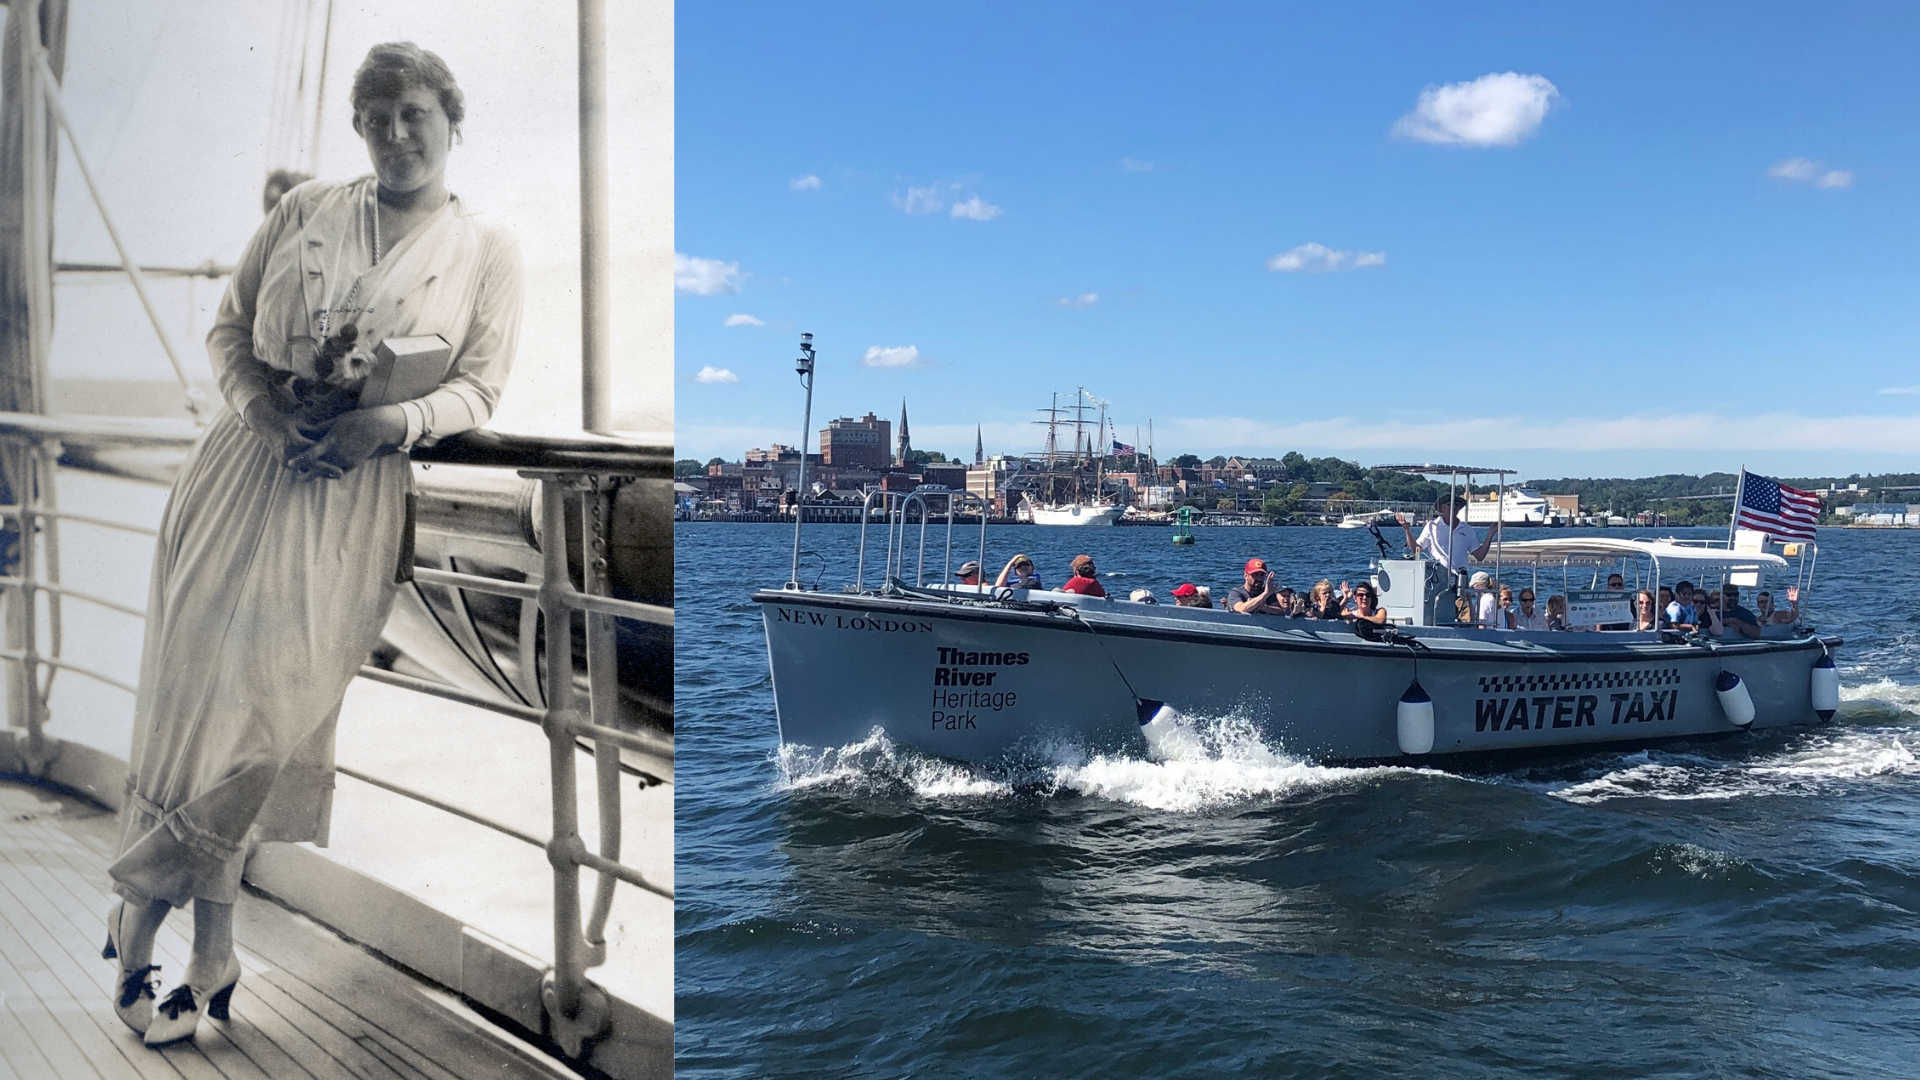 Suffragettes, Puppeteers, & Patriots: Women of the Thames Boat Tour